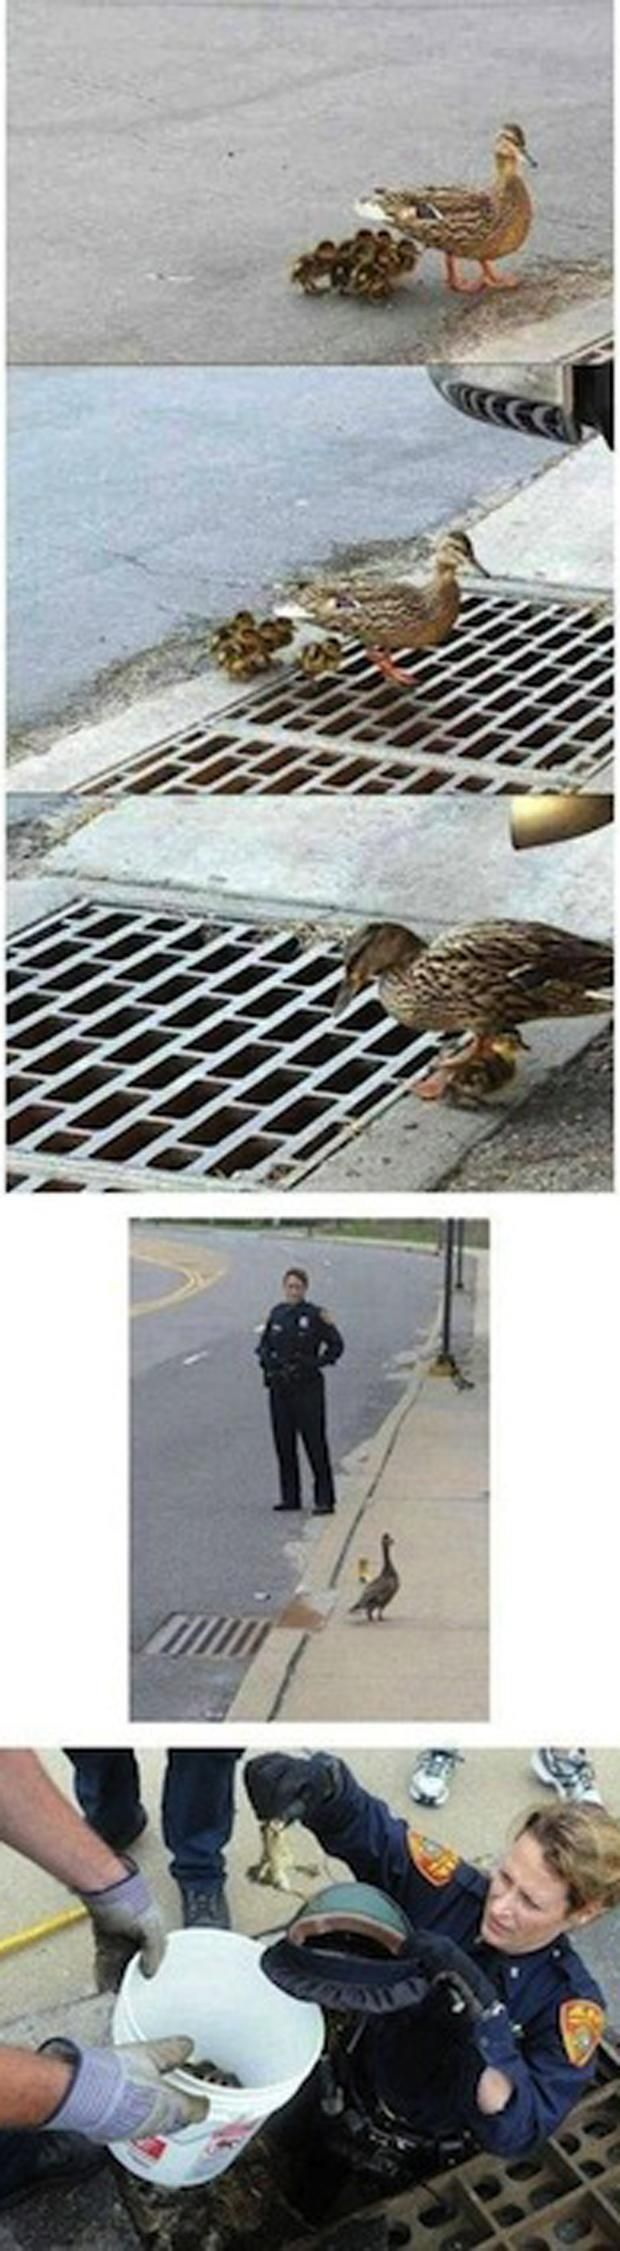 faith in humanity restored,